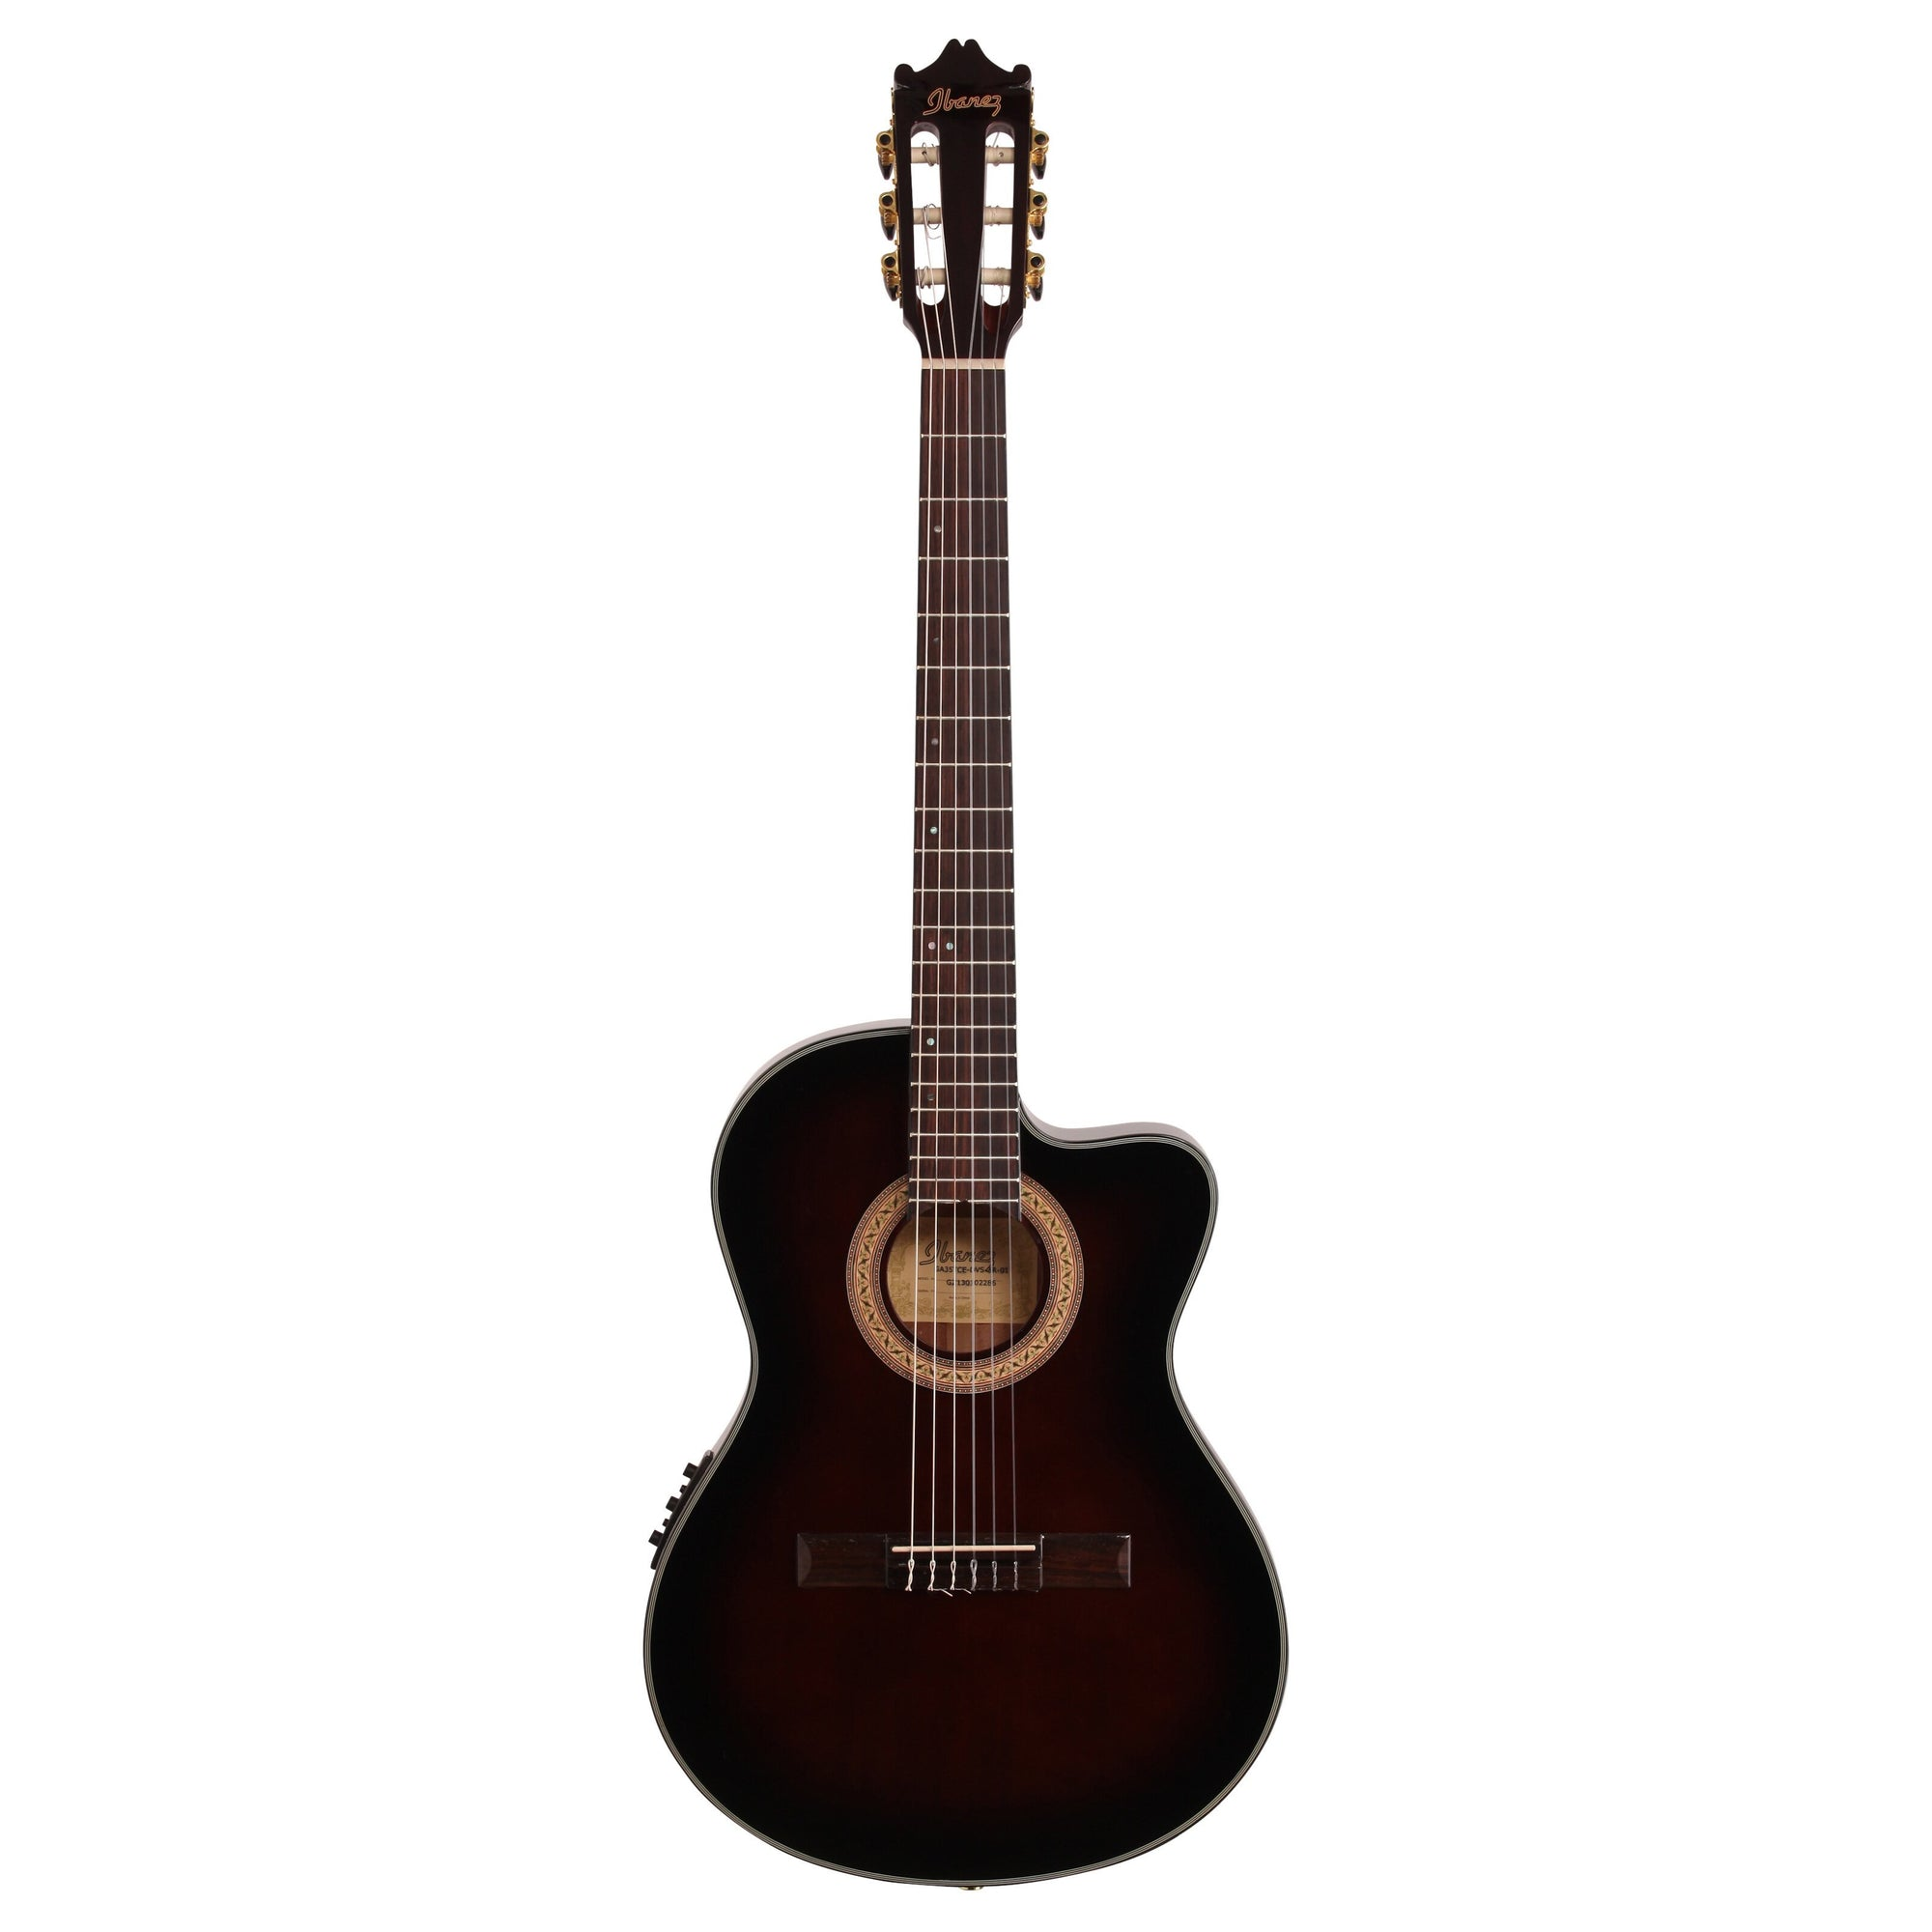 Ibanez GA35TCE Thinline Classical Acoustic-Electric Guitar, Dark Violin Sunburst